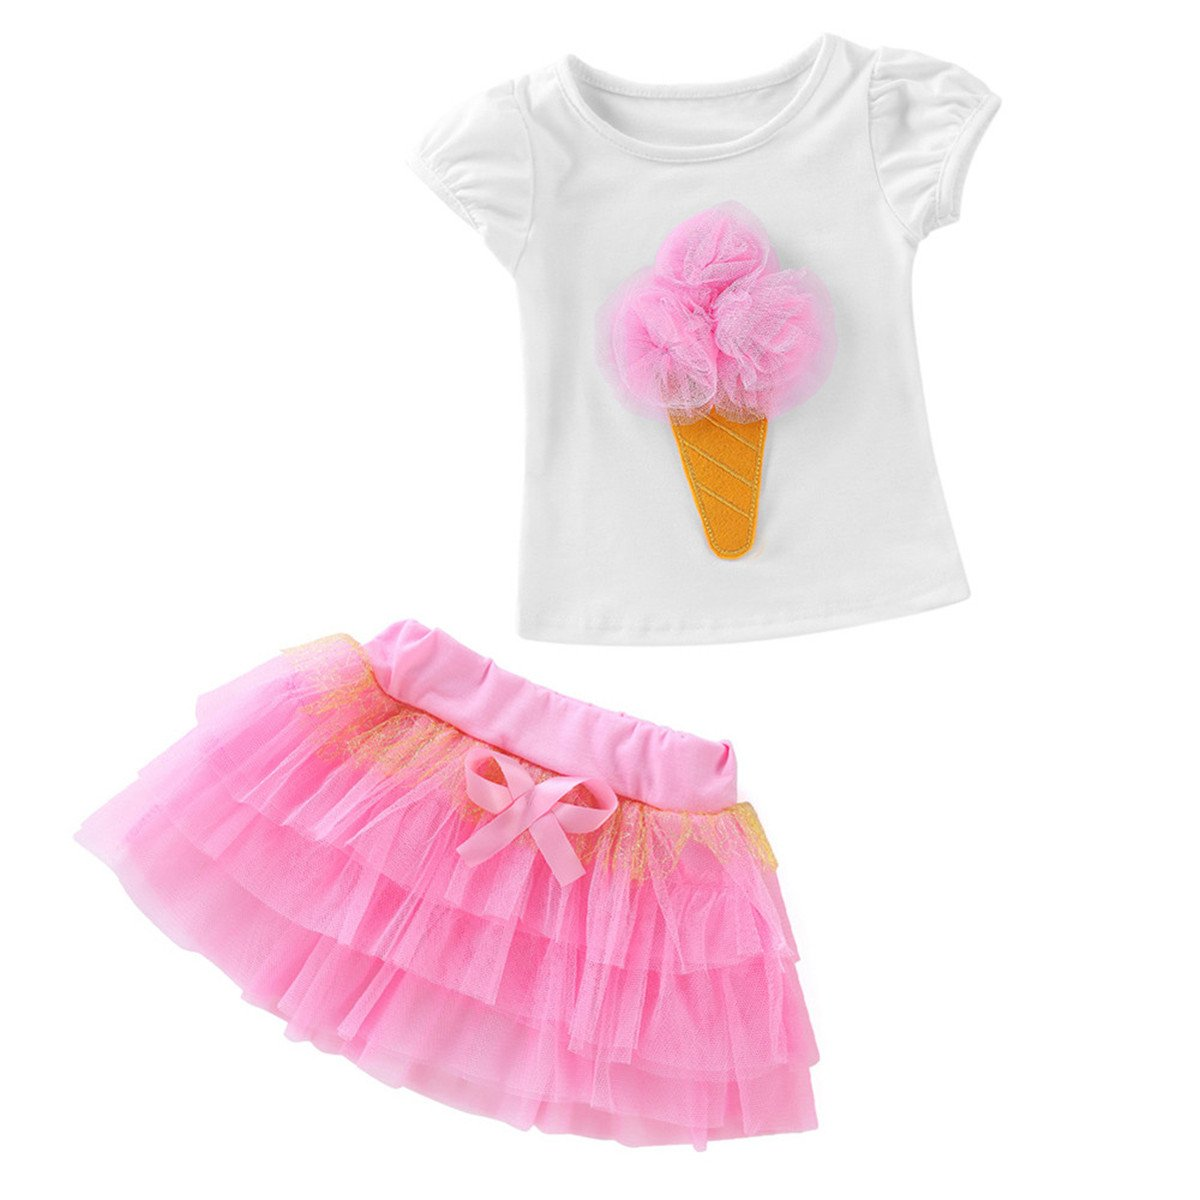 A2Z 4 Kids/® Kids Girls Crop /& Shorts Pink Polka Dot Print Trendy Fashion Summer Outfit Top /& Short New Age 5 6 7 8 9 10 11 12 13 Years